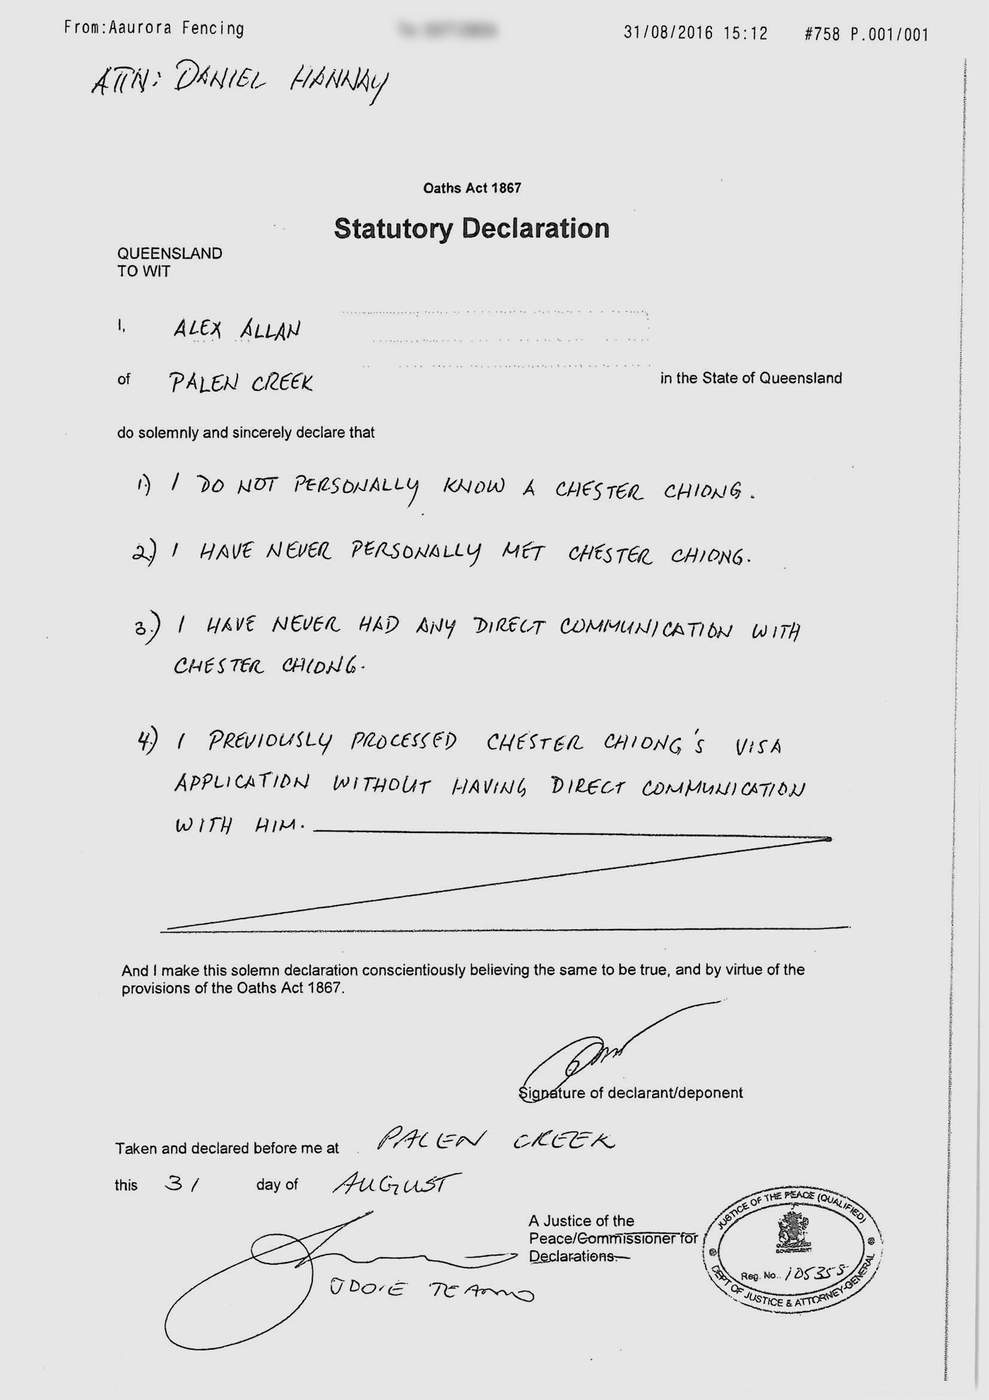 Read Alex Allan's statutory declaration.